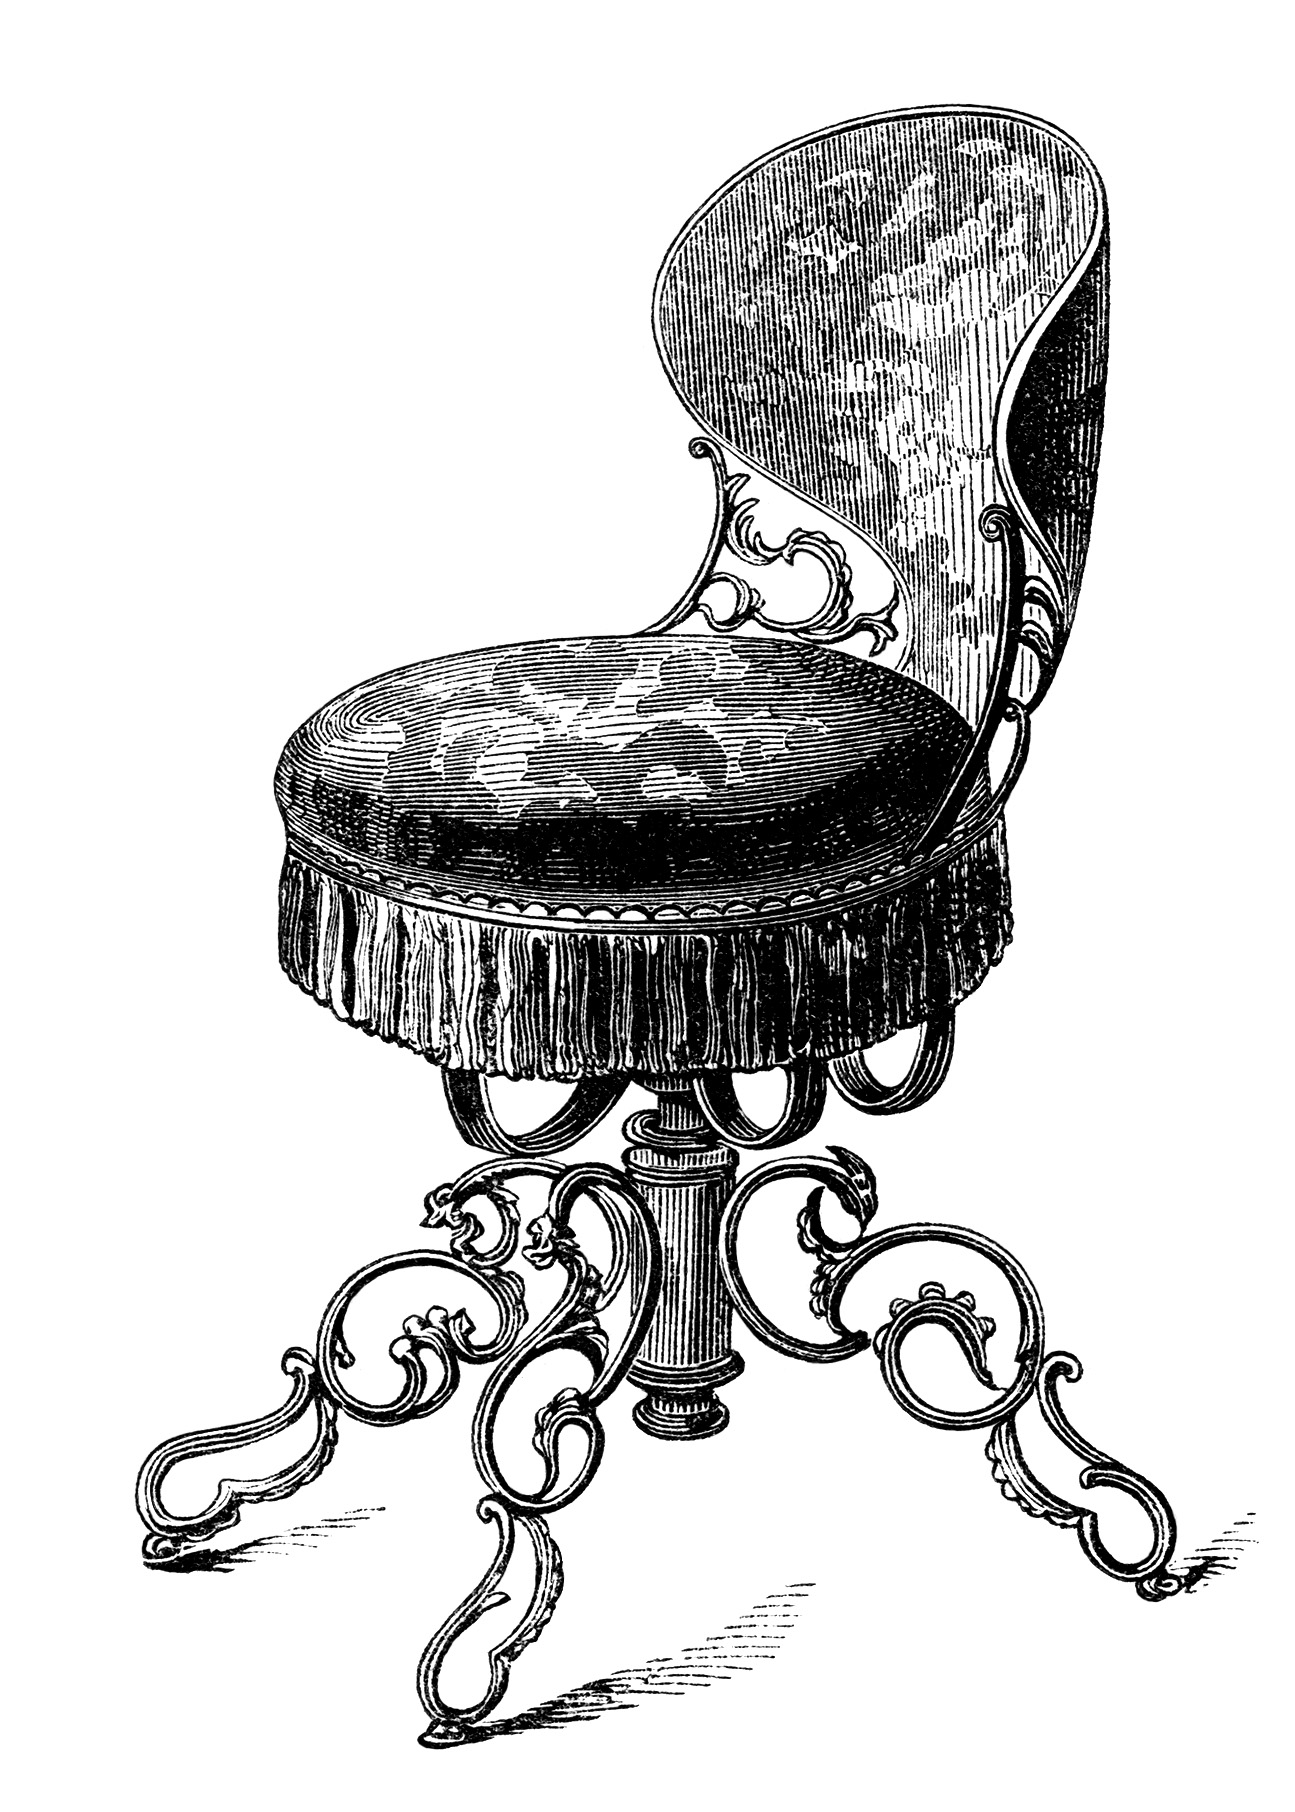 Music Chair Antique Music Chairs Free Clip Art Images Old Design